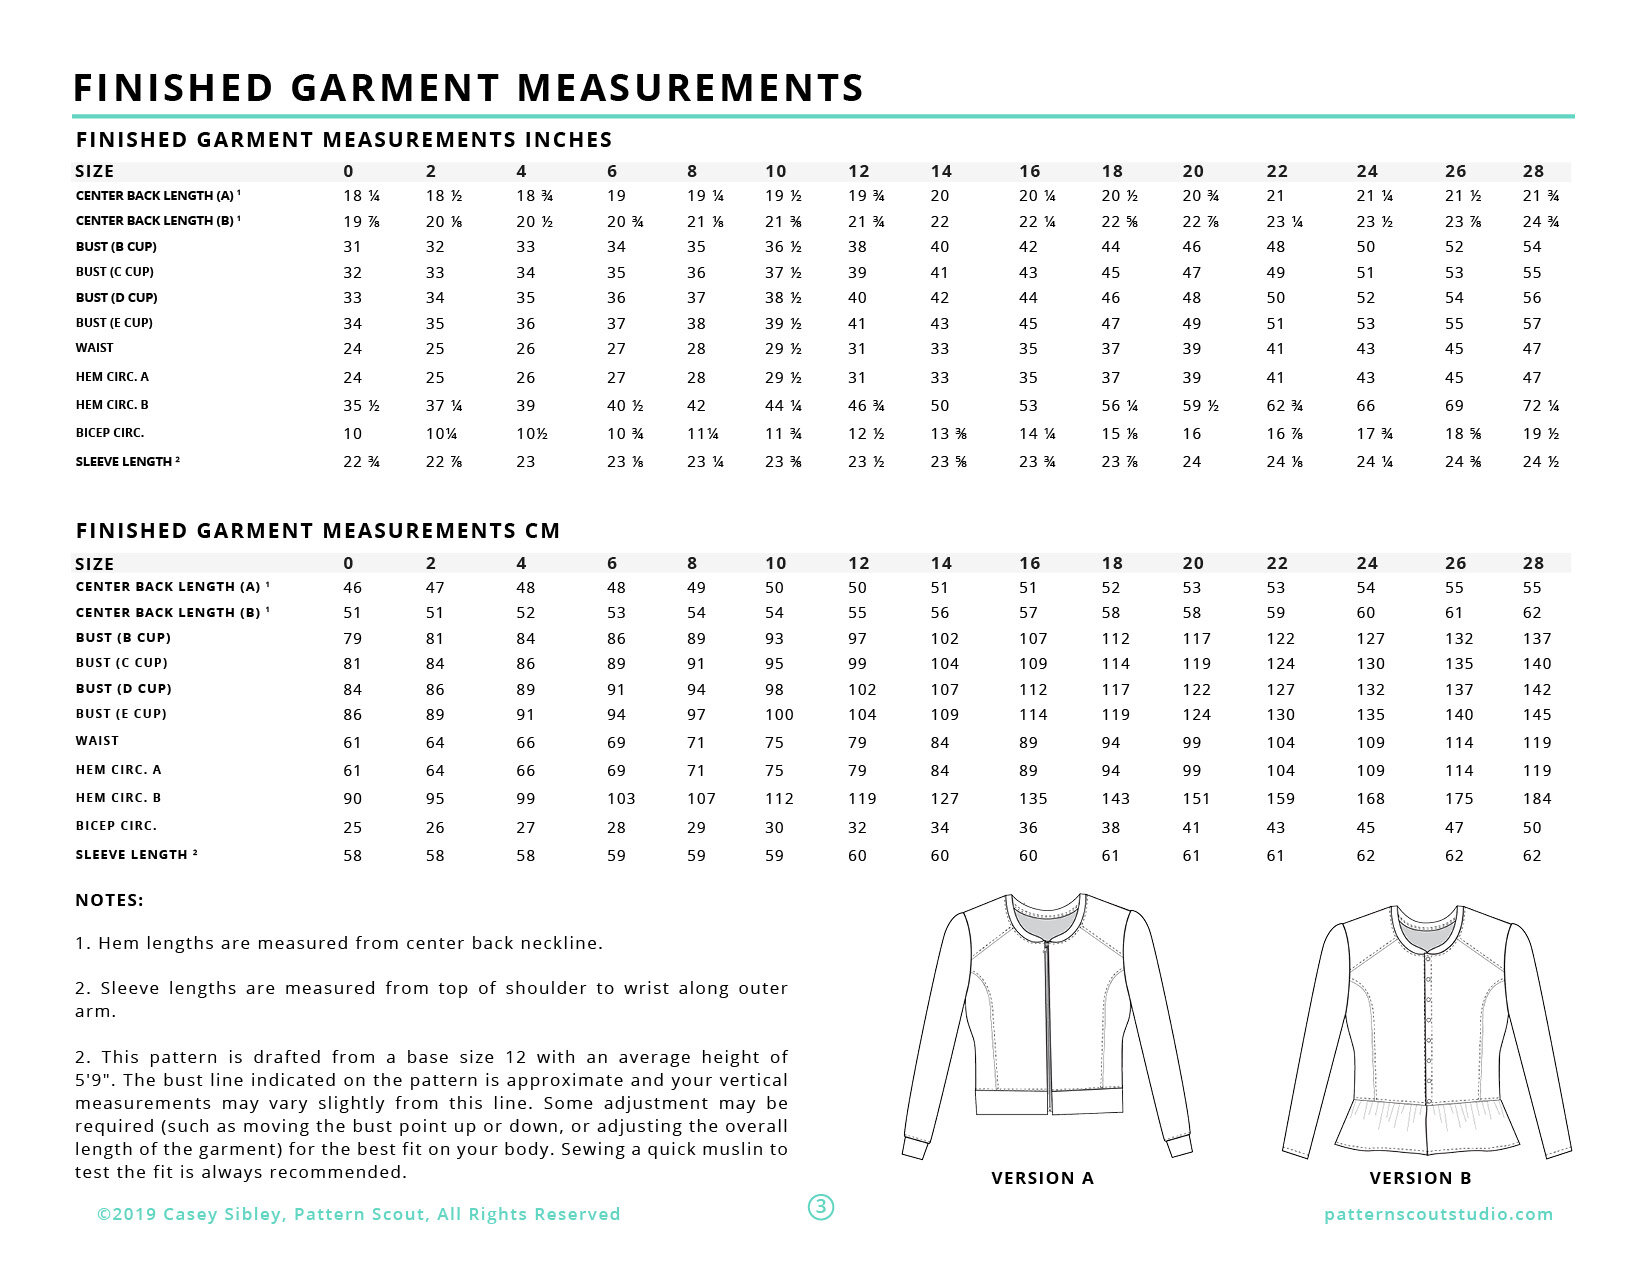 PS_LuluCardi_GARMENTMEASUREMENTS.jpg